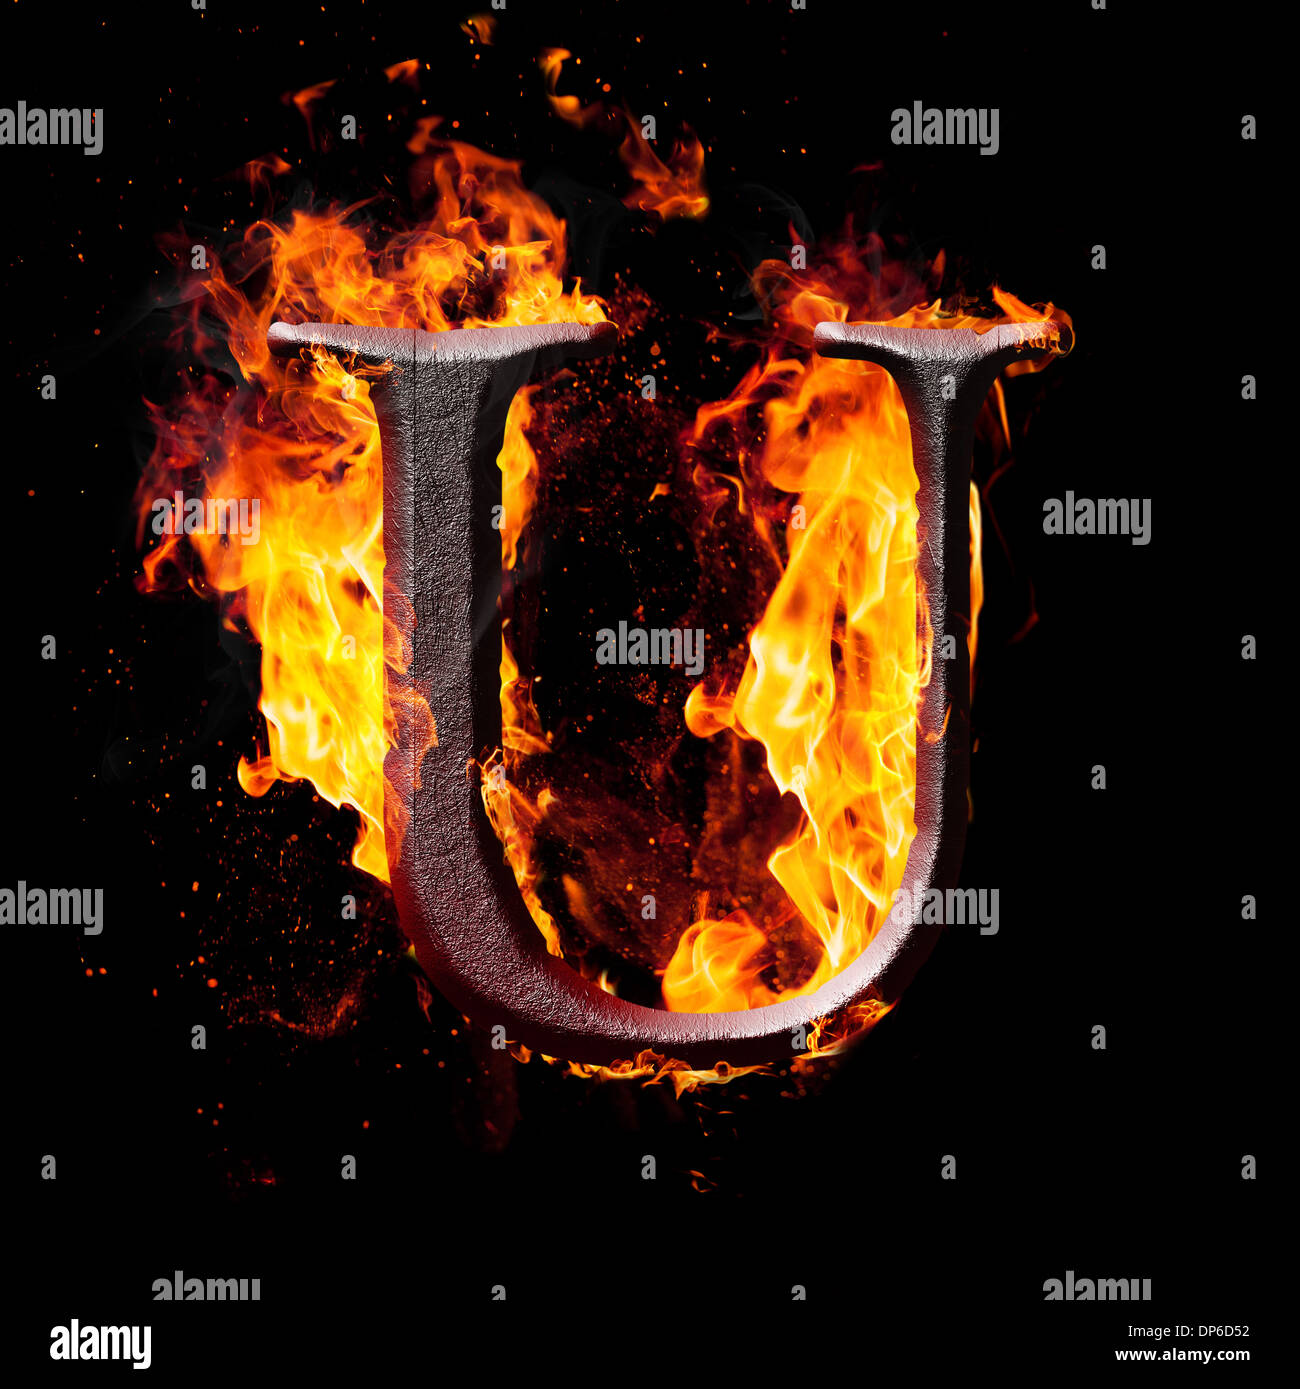 Letters and symbols in fire u stock photo 65295582 alamy letters and symbols in fire u thecheapjerseys Images